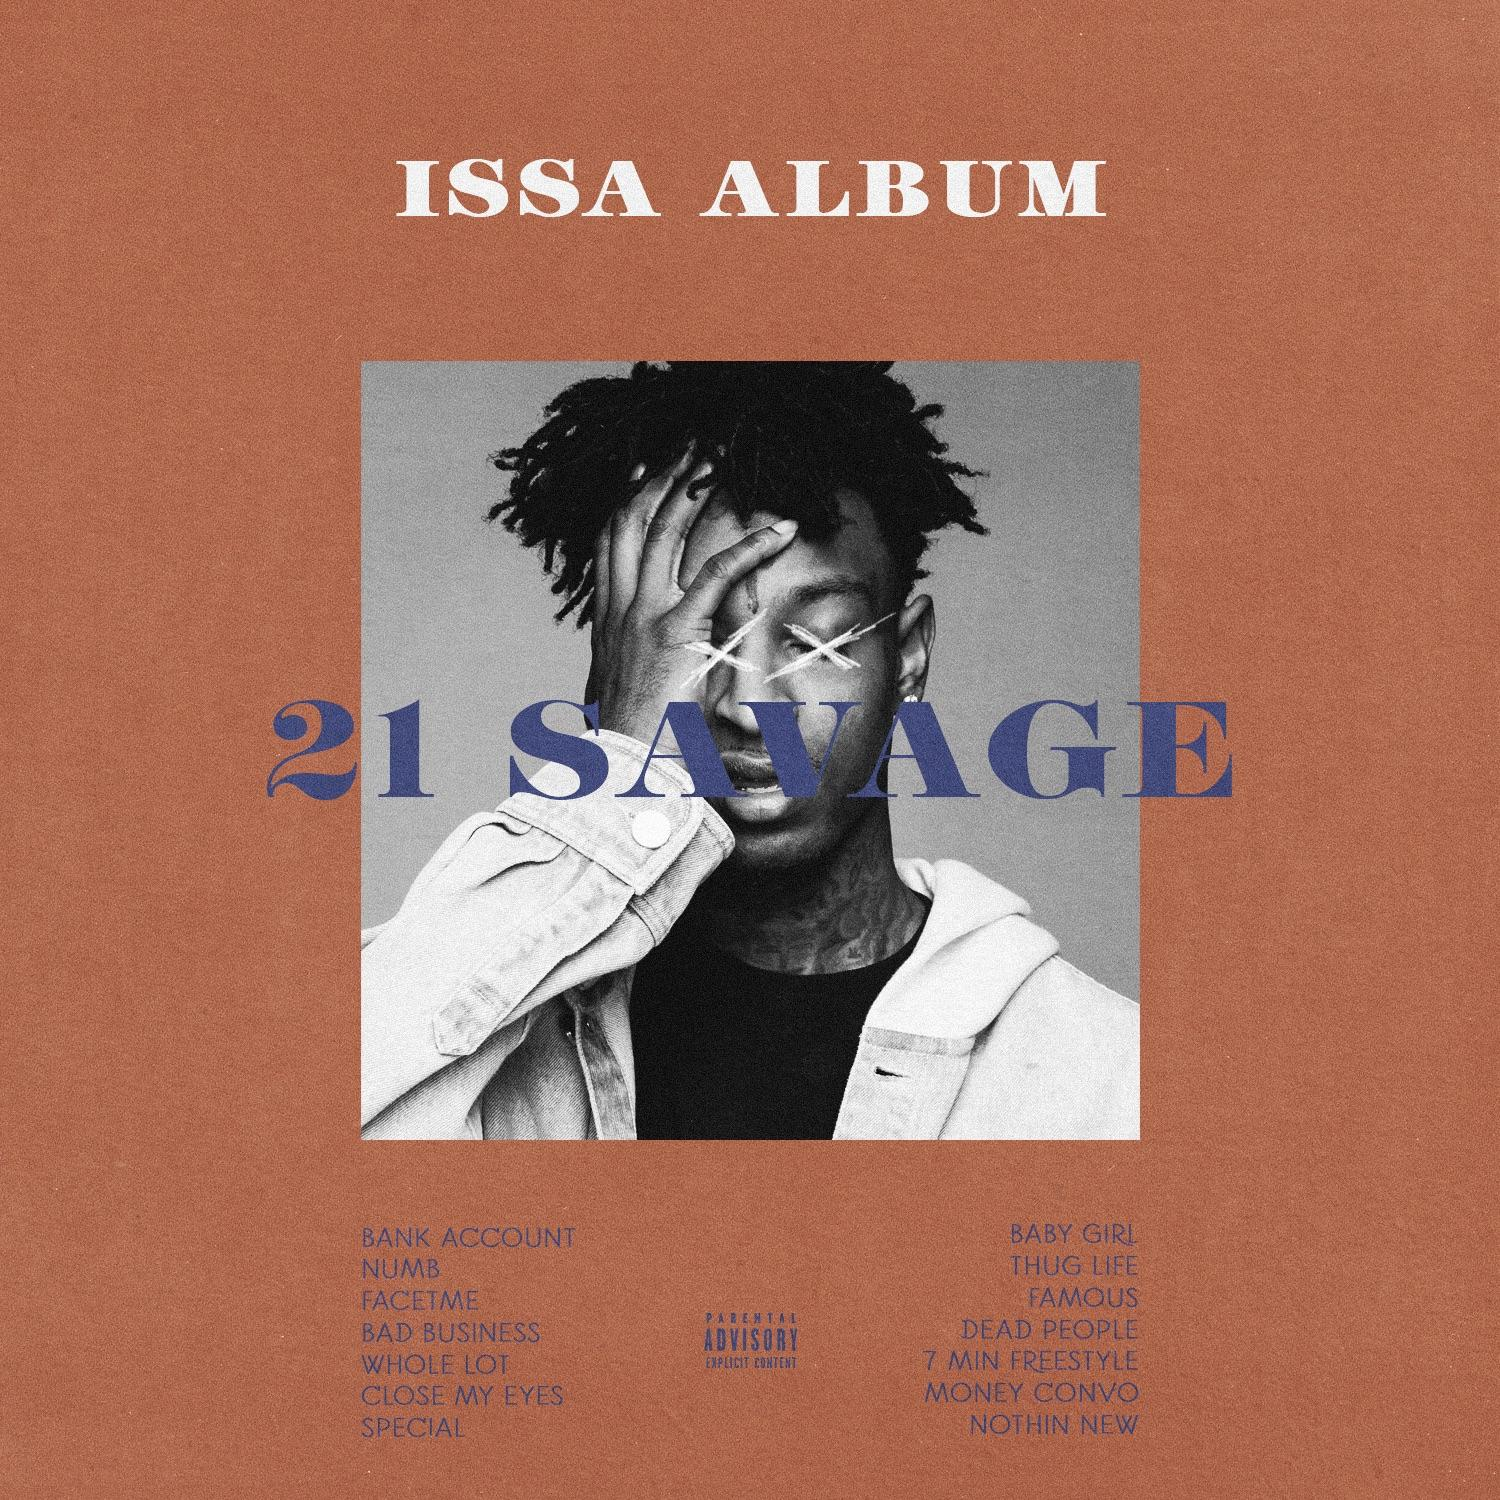 Issa Album 21 Savage Alt Album Cover Designed By Me 21savage